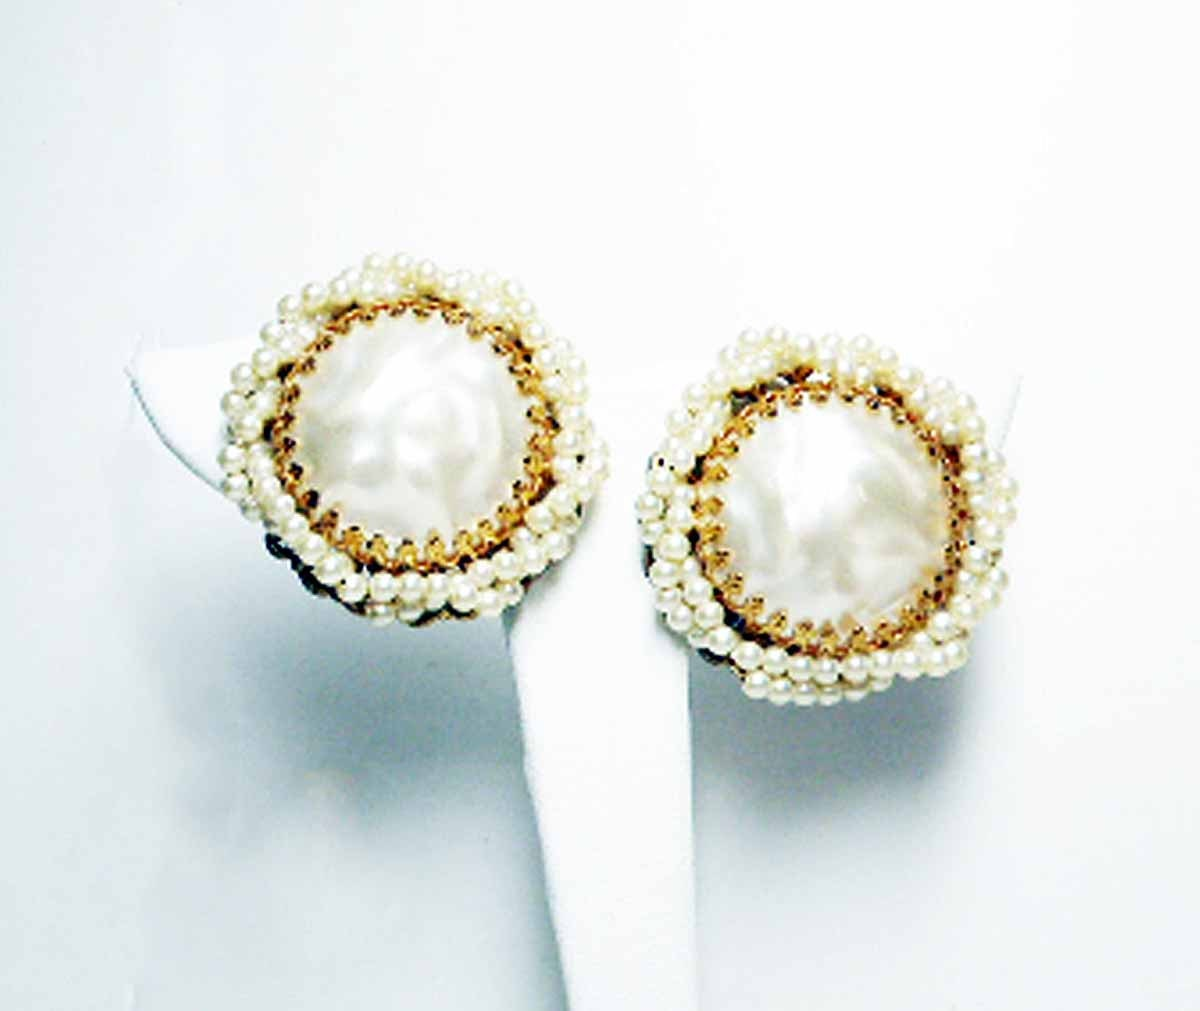 Button Earrings: Large Pearl Earrings Button Style Pearlescent White Earrings